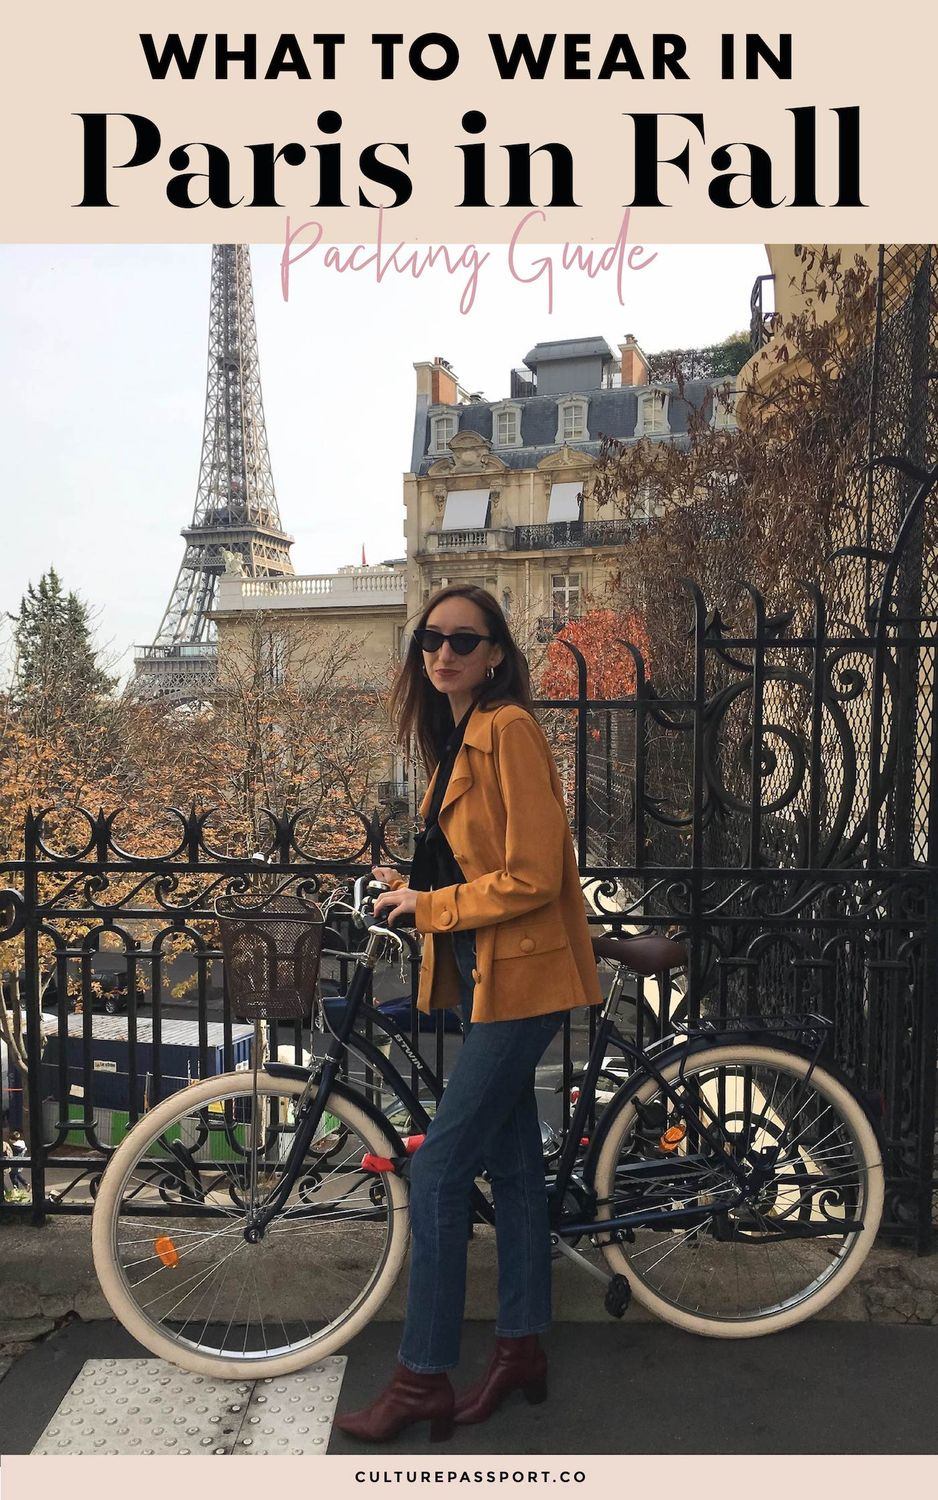 What To Wear In Paris In Fall Guide / Paris Fall Packing List